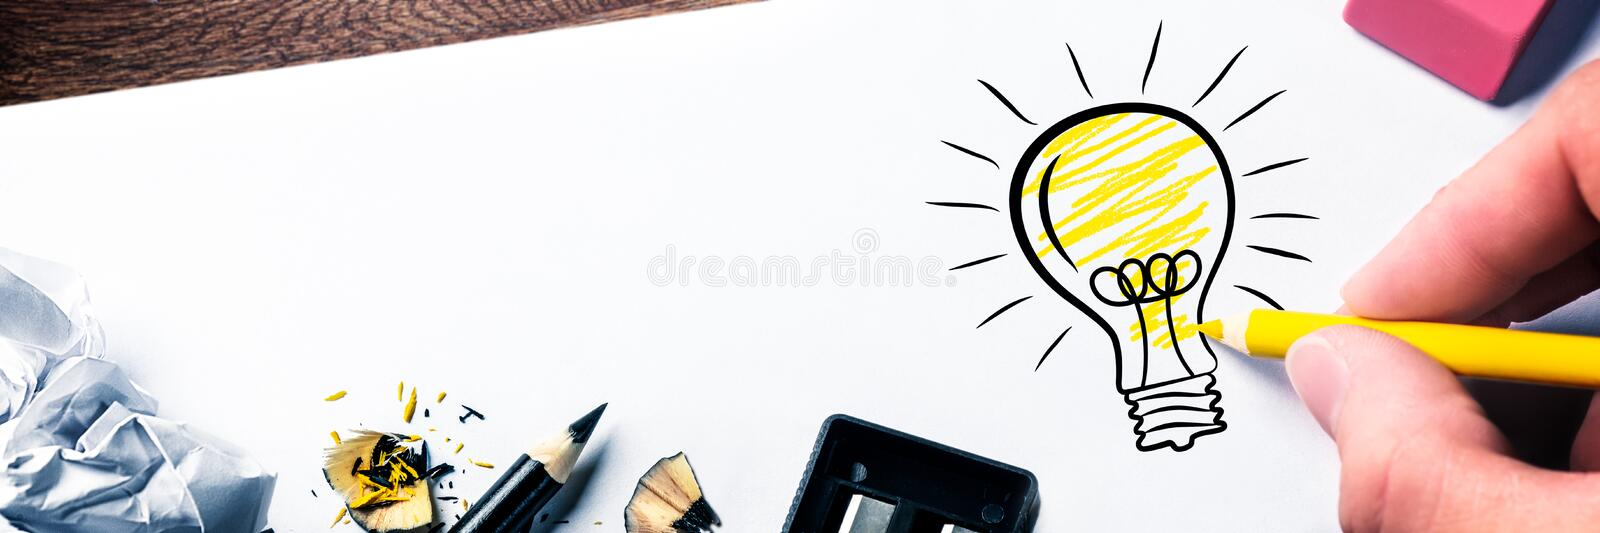 Hand Drawing Light Bulb On Paper stock photo